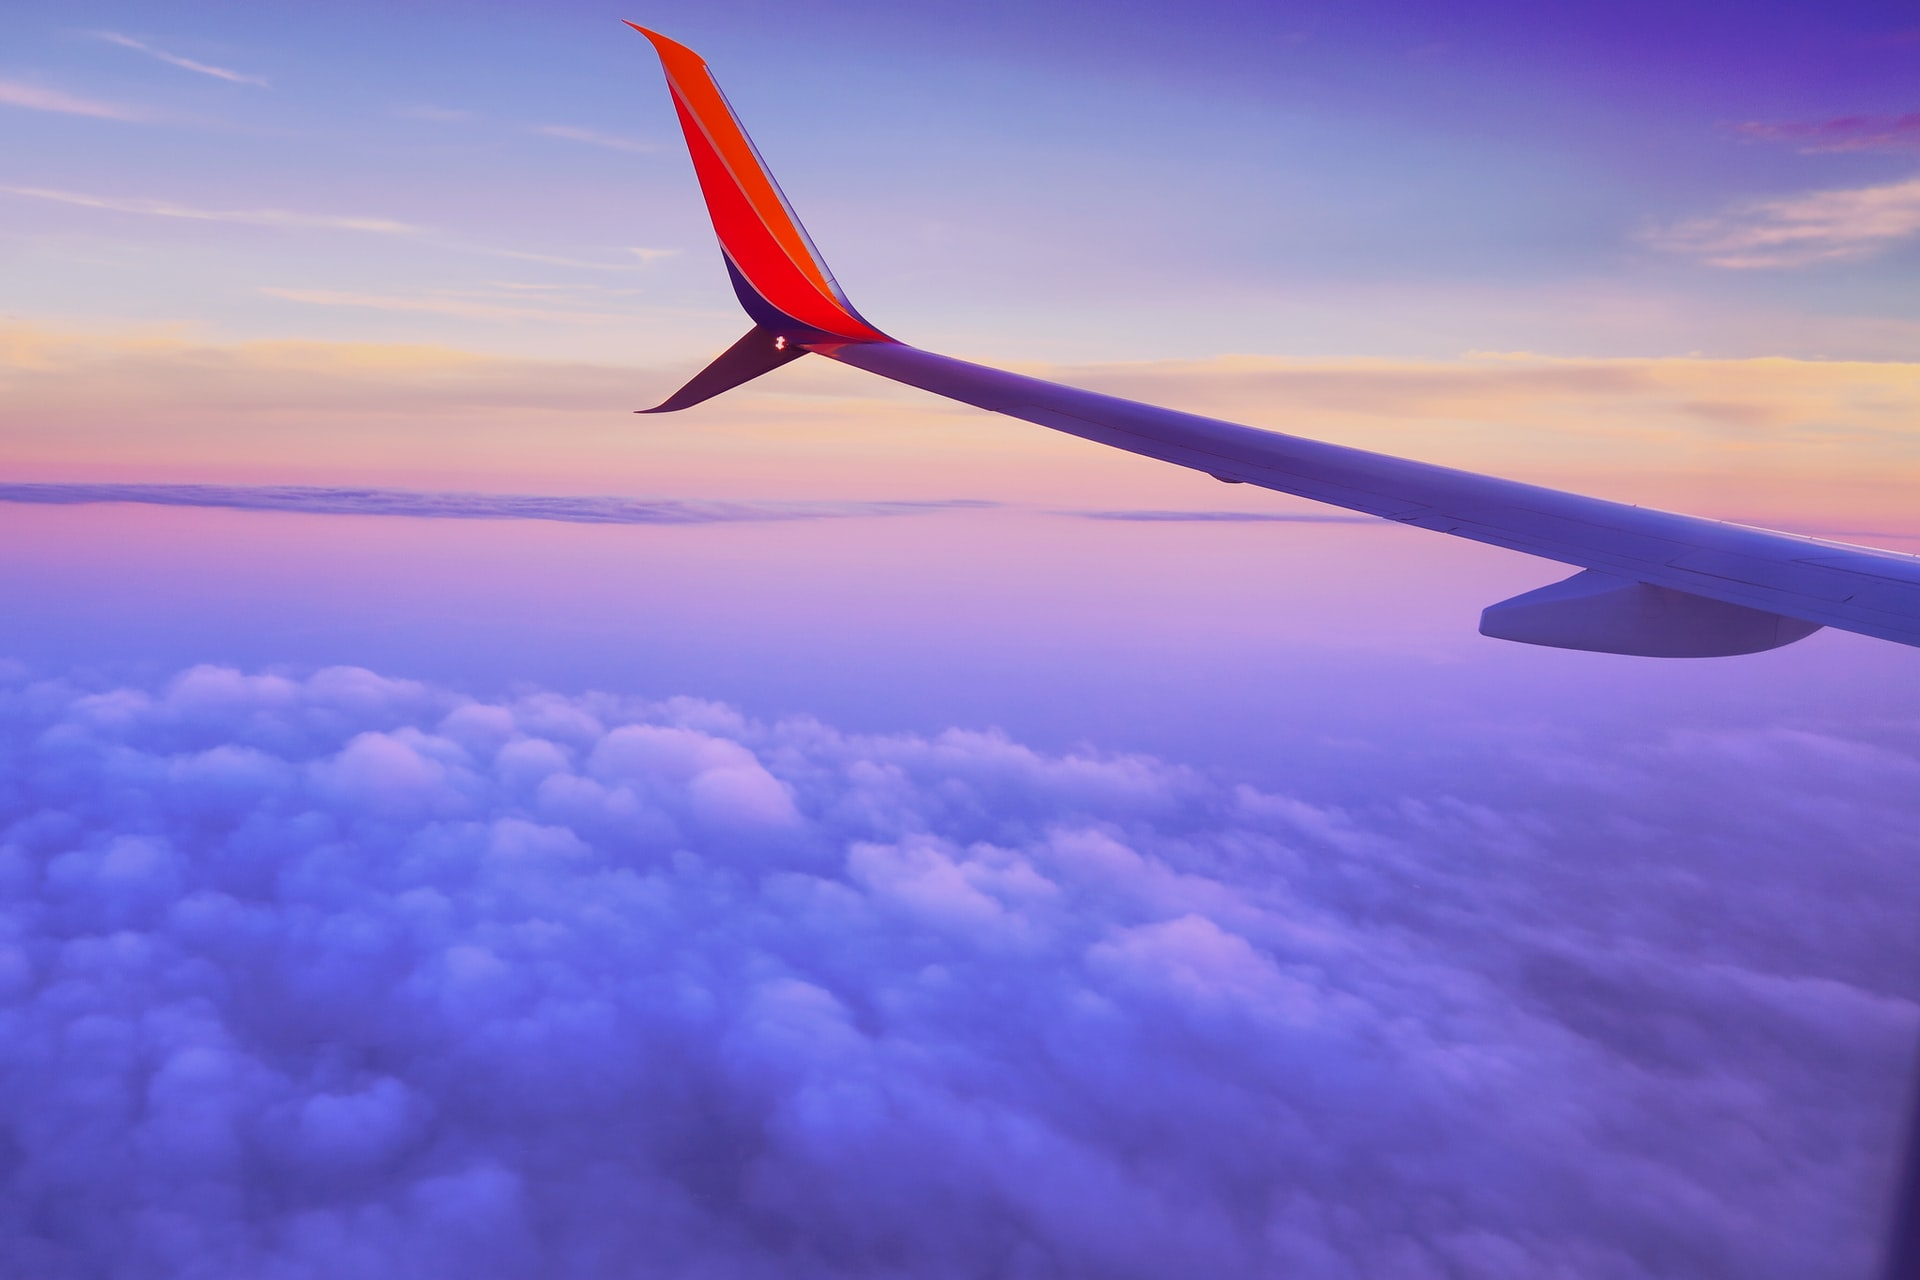 Mint Launches EFT Payments Platform Designed for the Travel Industry